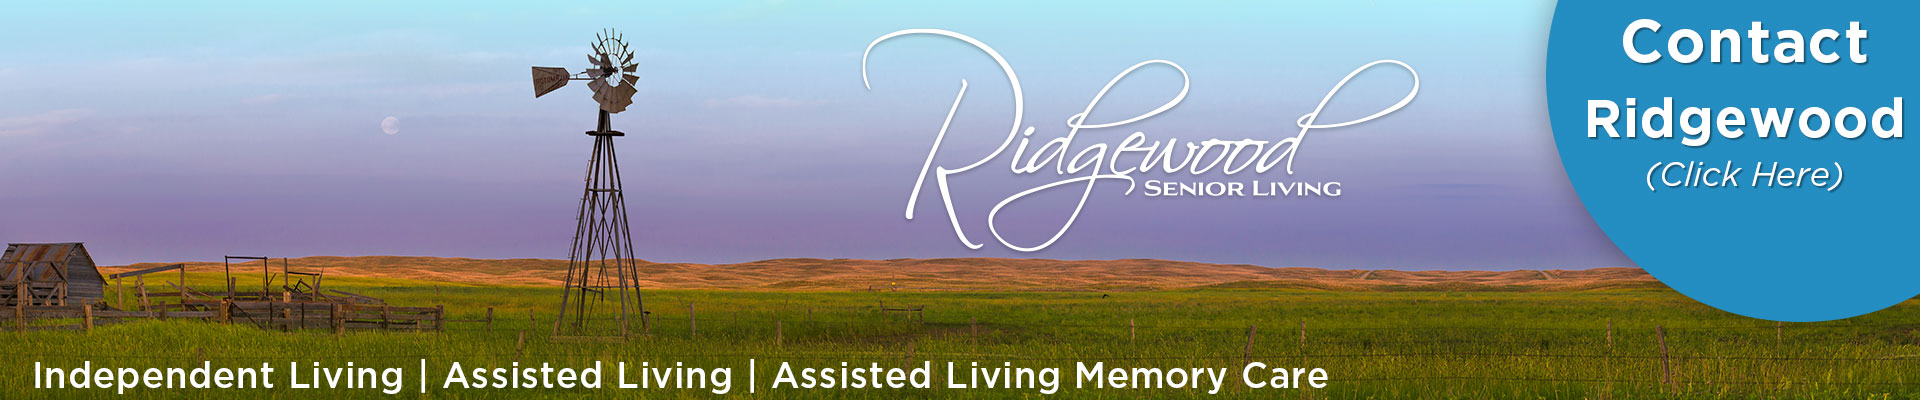 Contact Ridgewood Senior Living - Click Here (Image of Nebraska landscape with windmill)